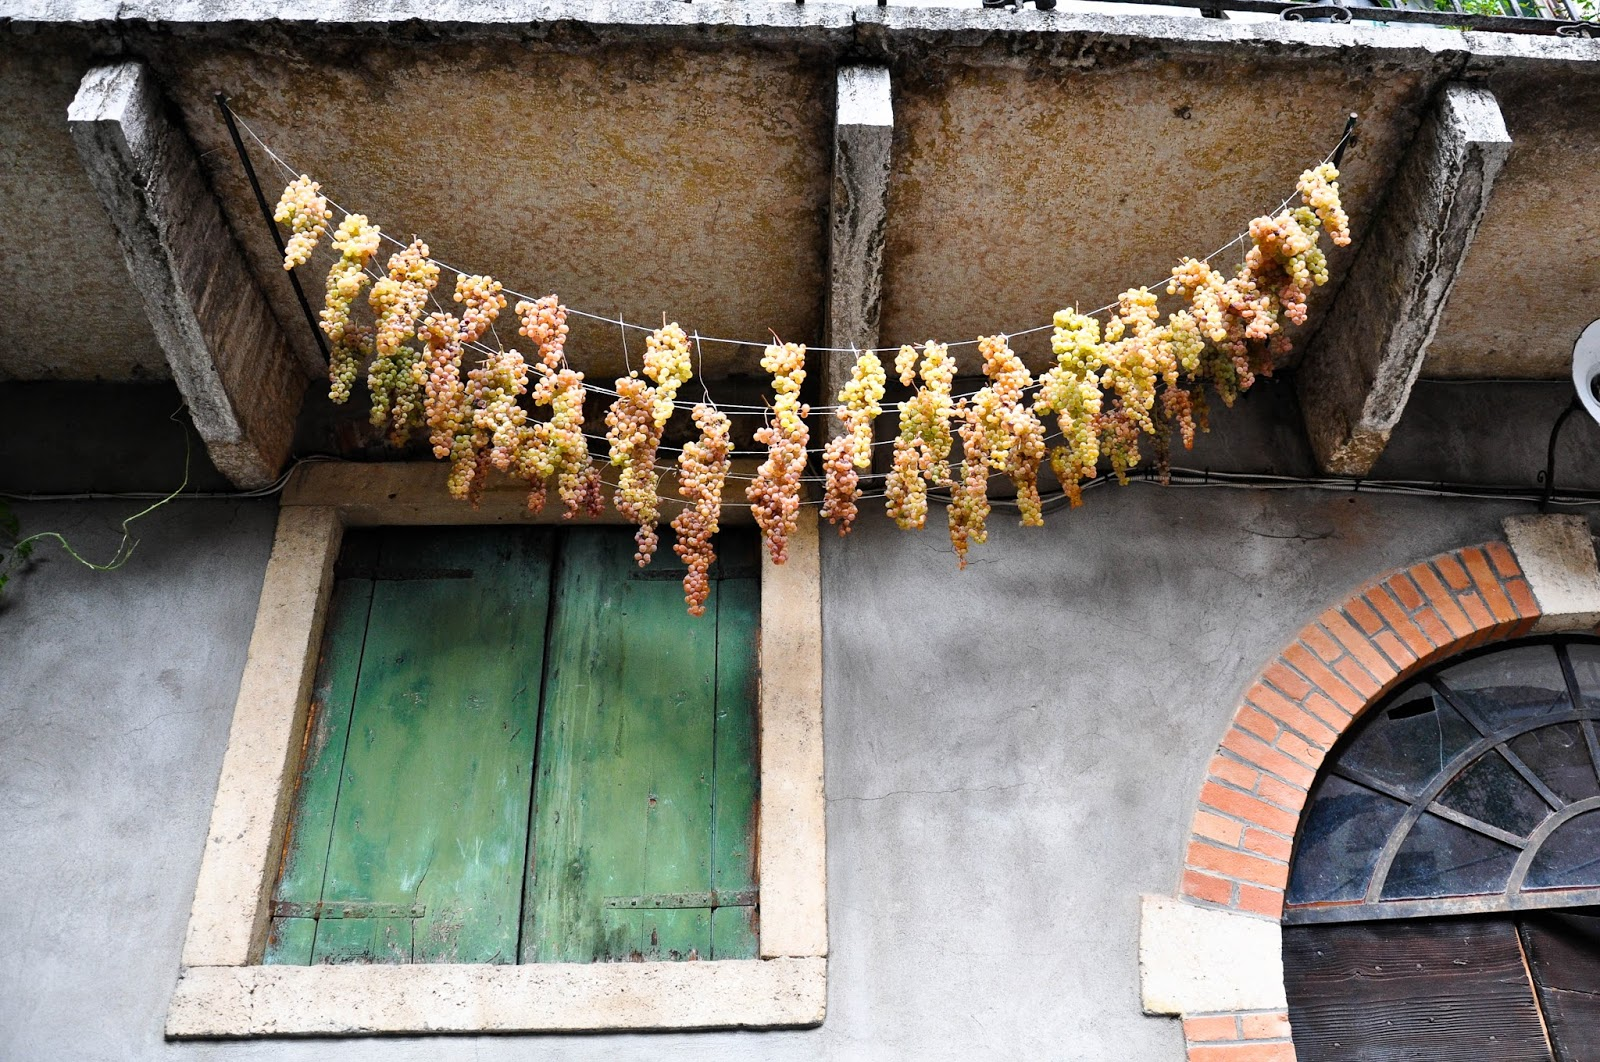 Bucnhes of grapes hanging underneath a balcony, Soave, Veneto, Italy